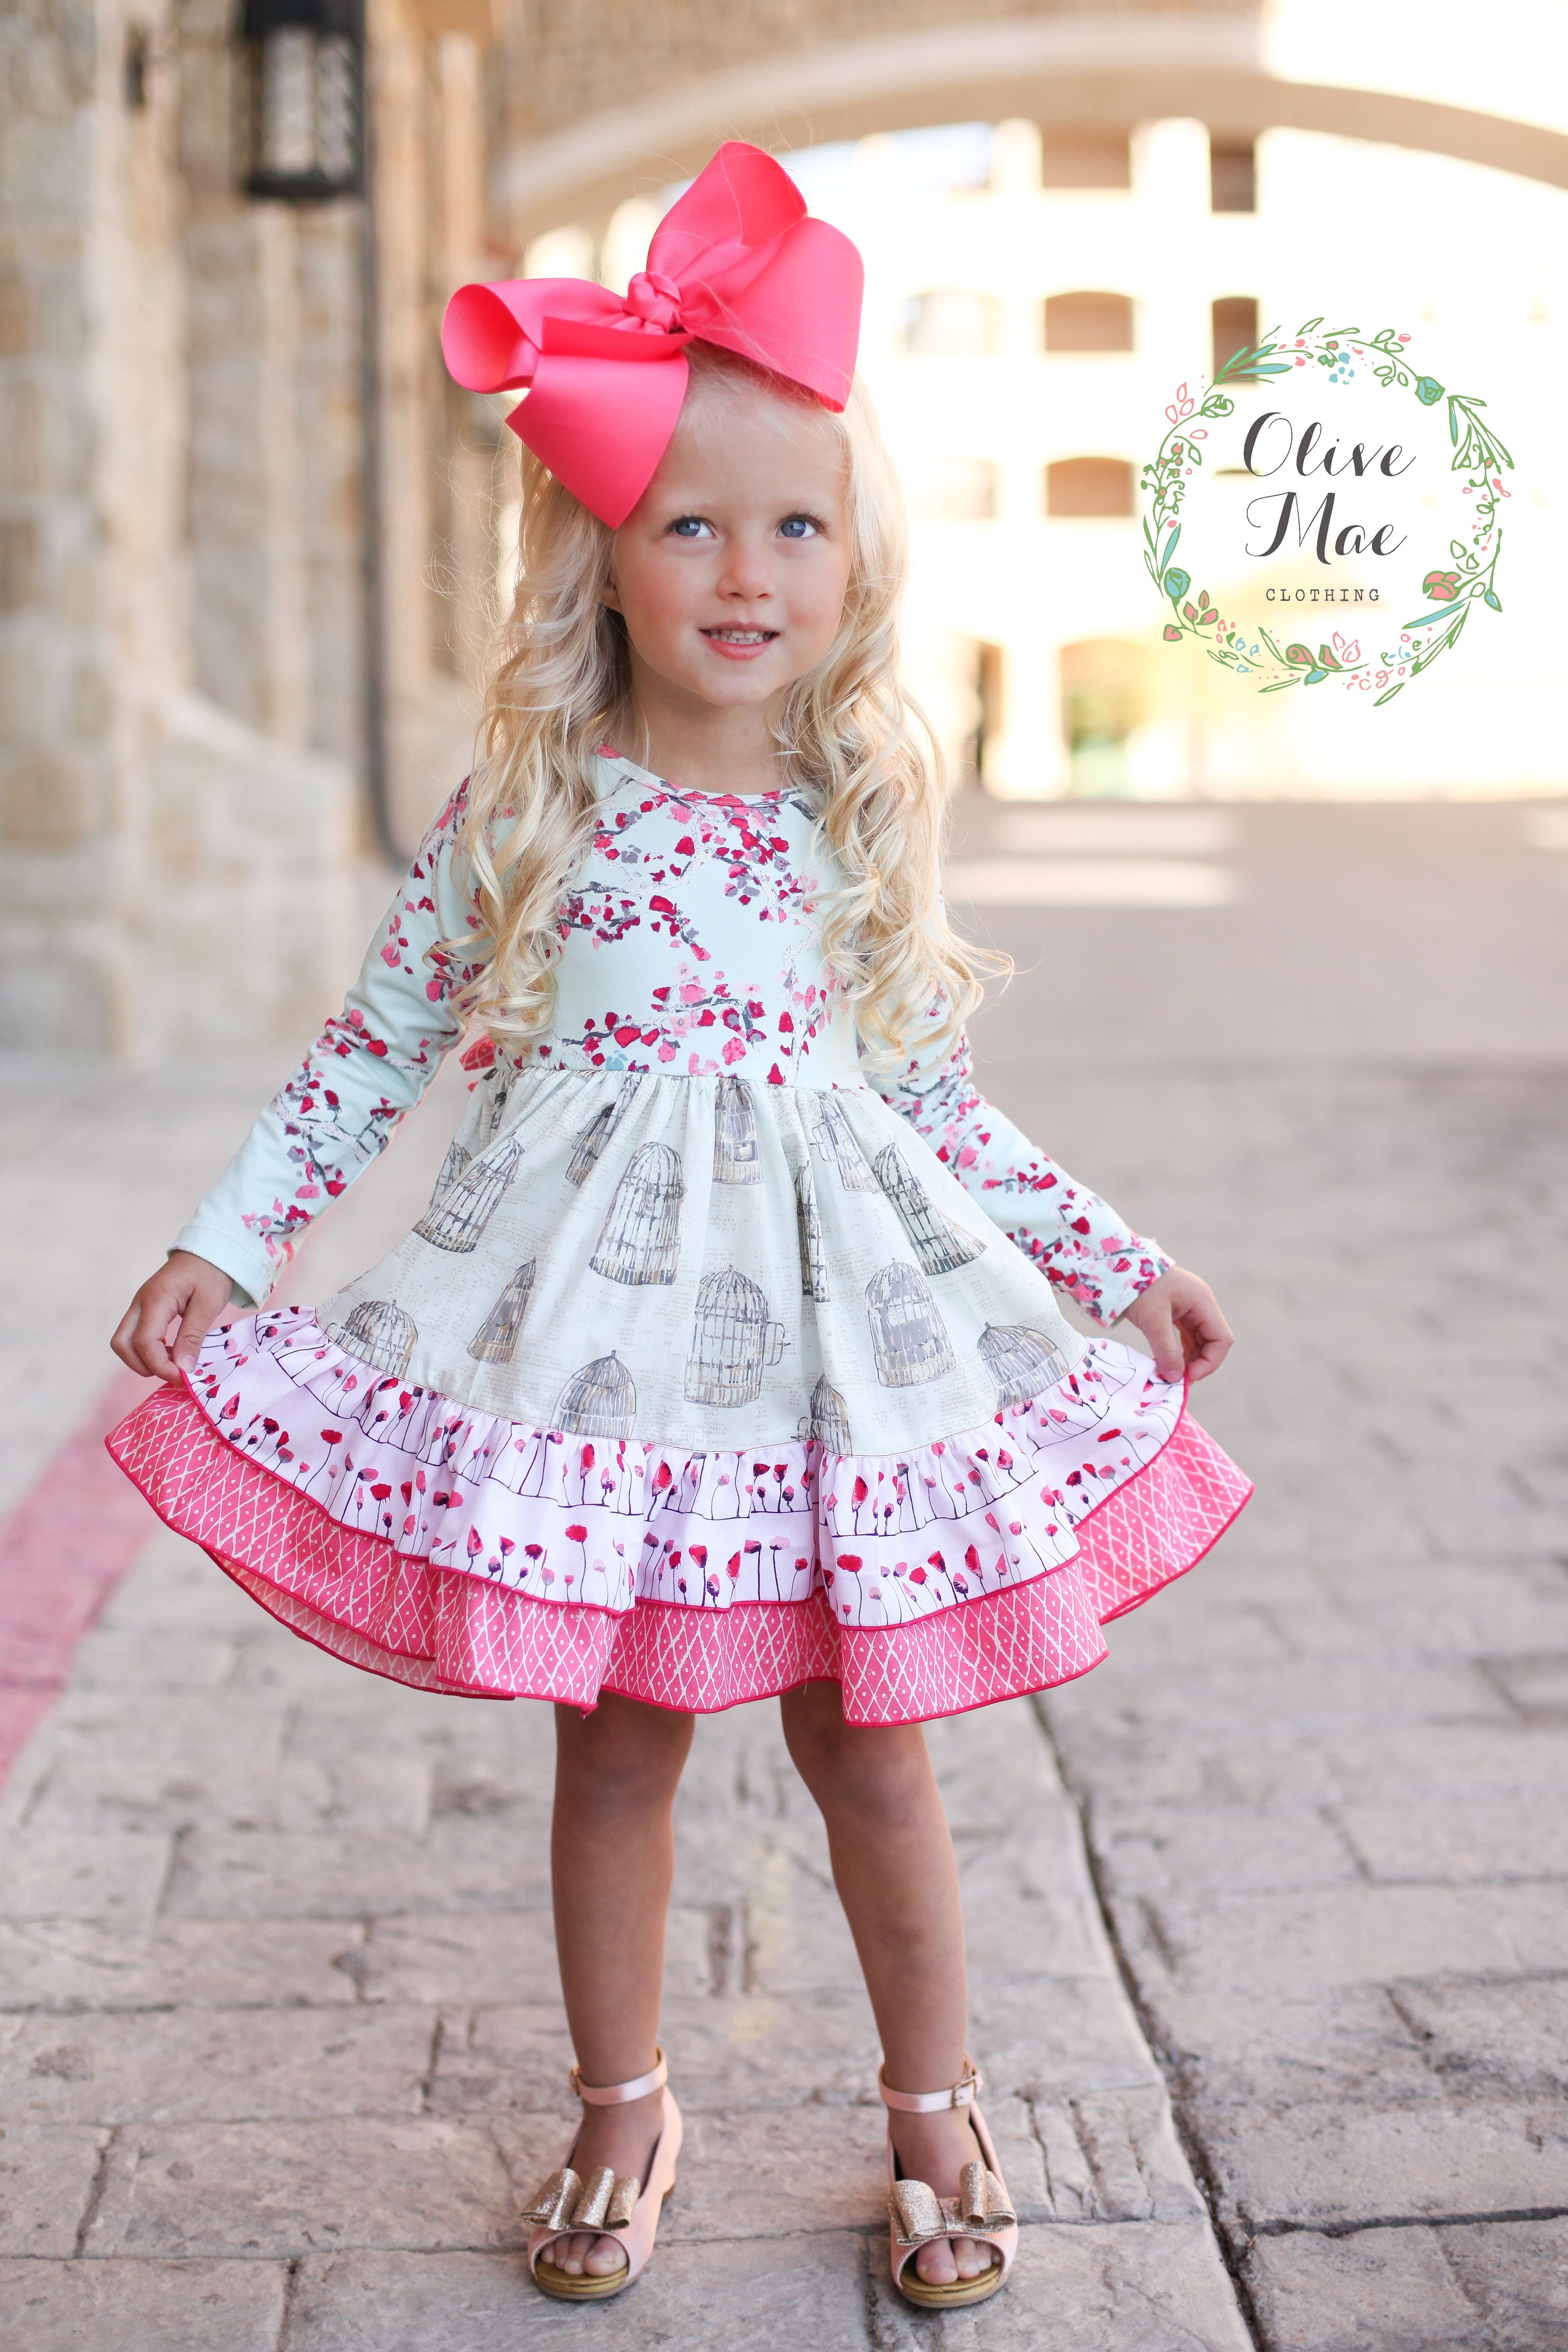 A little girls dream boutique Olive Mae Clothing